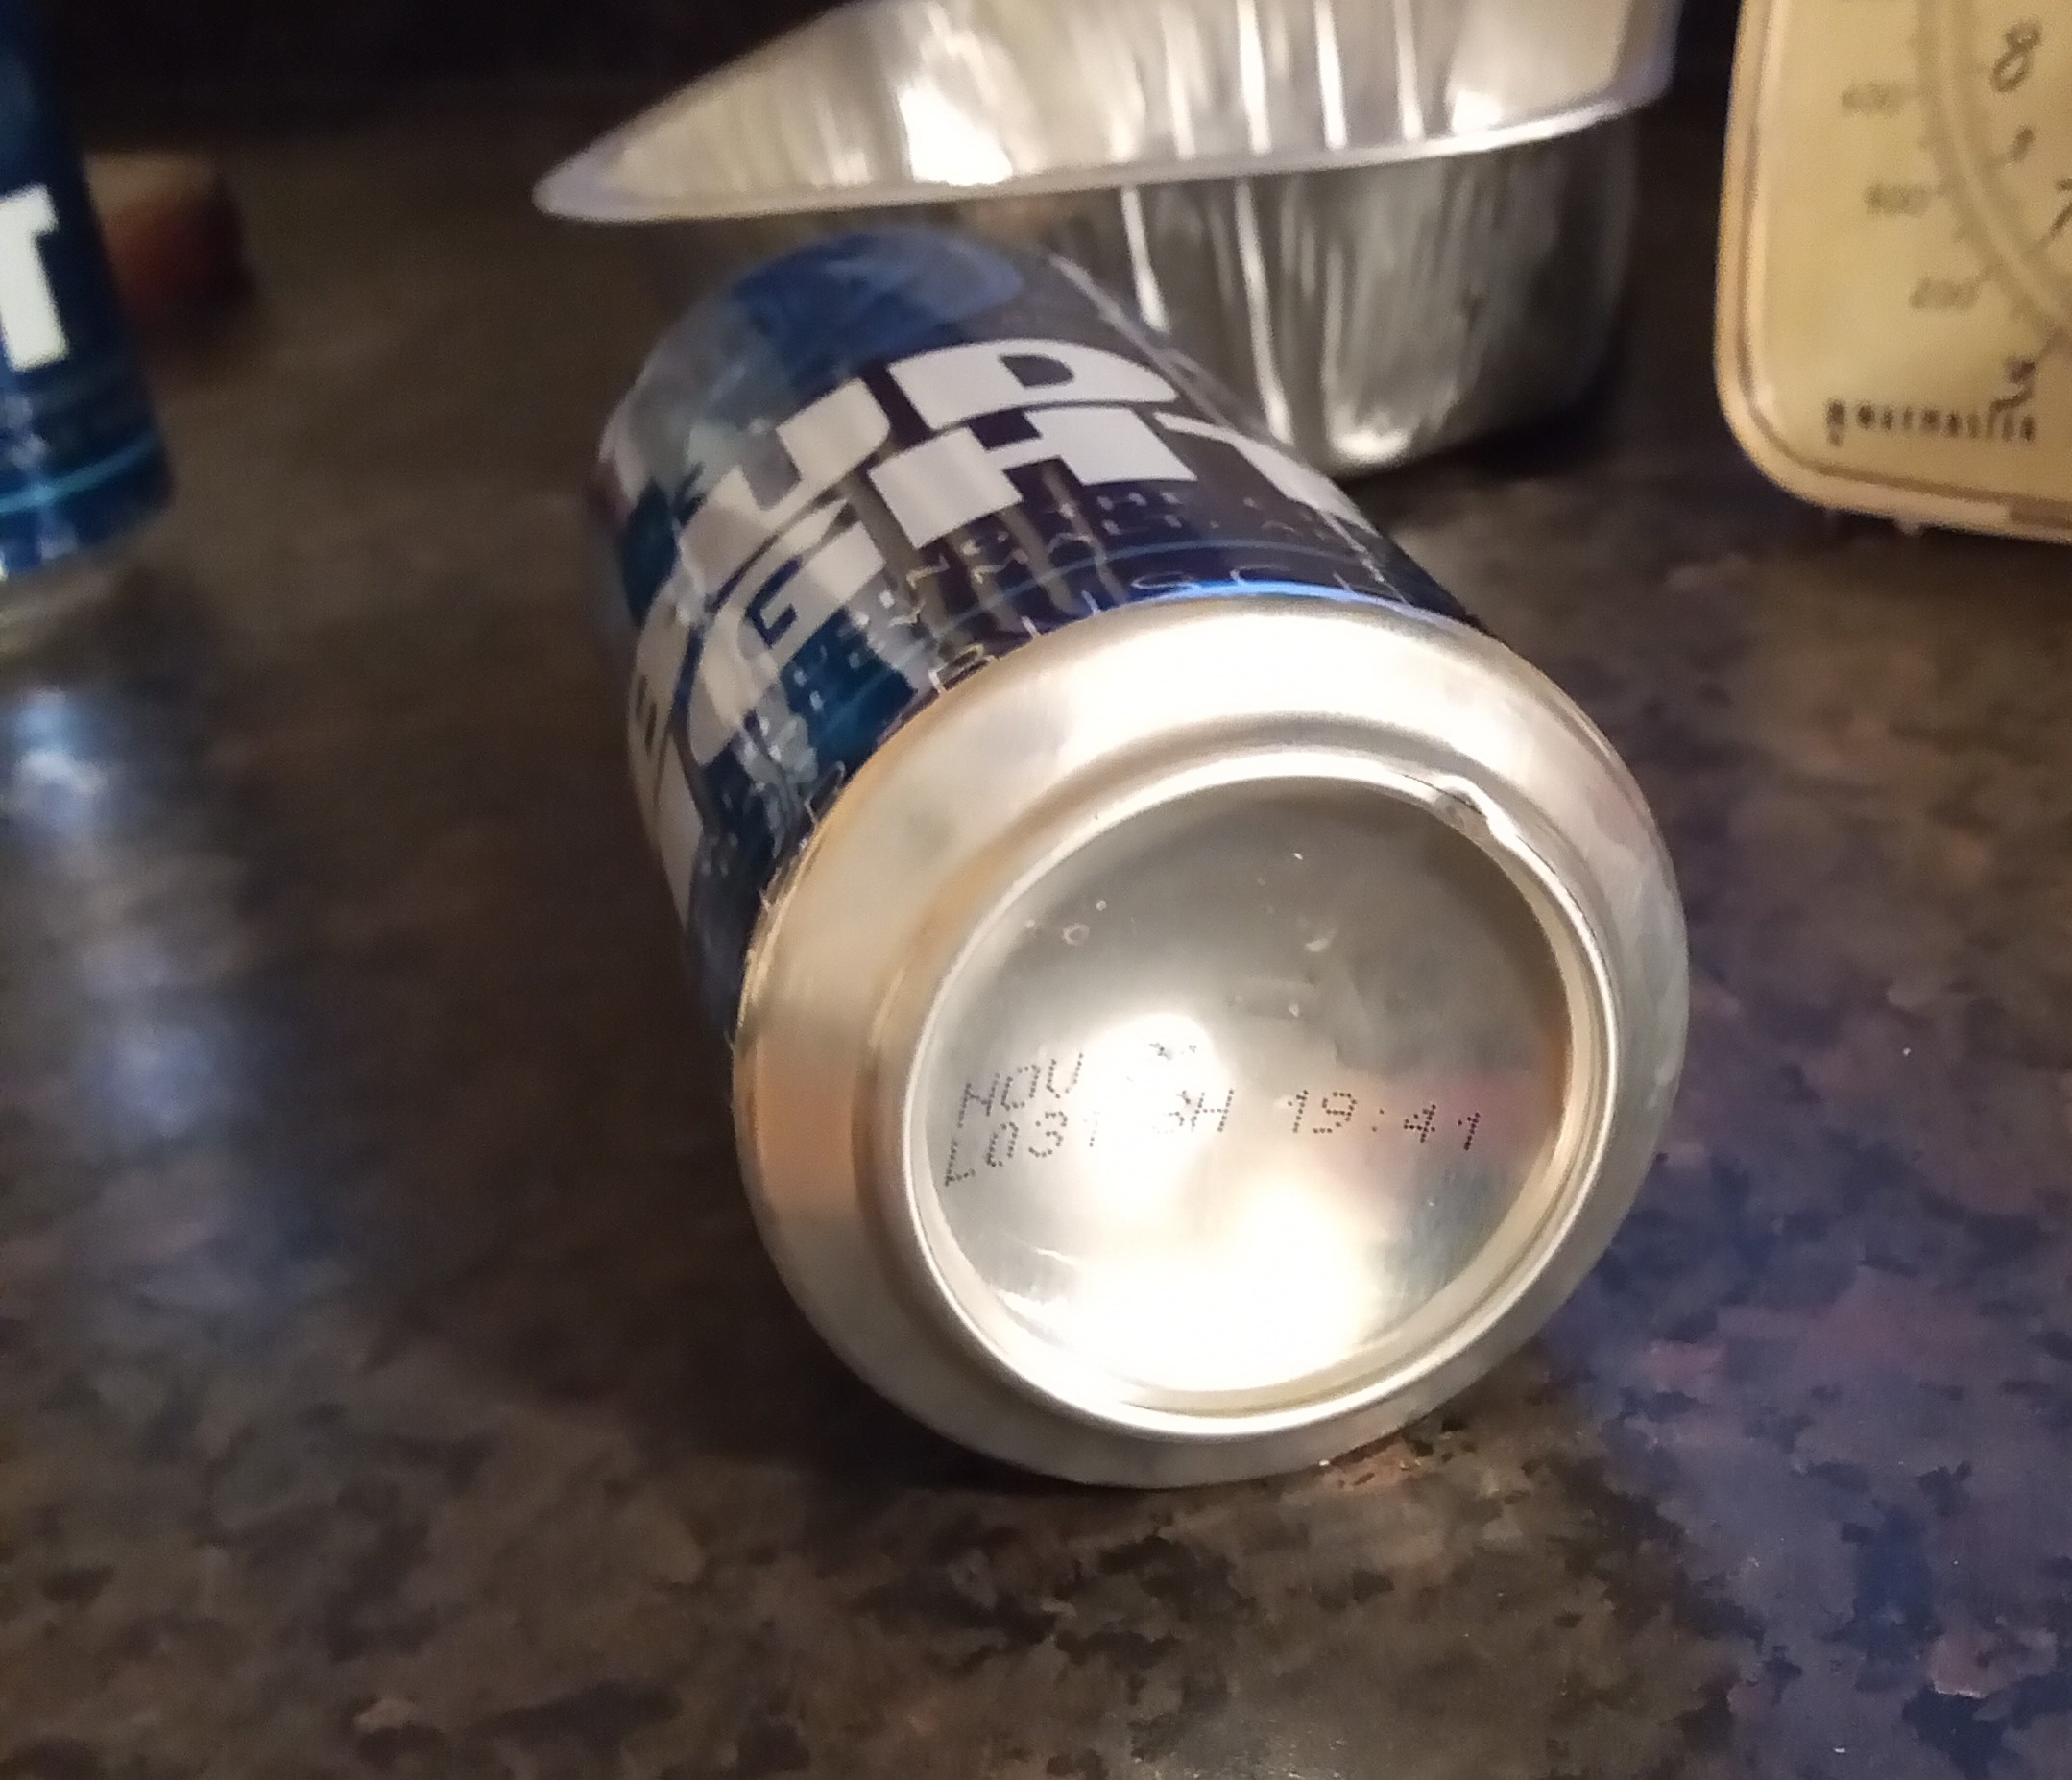 Damaged can